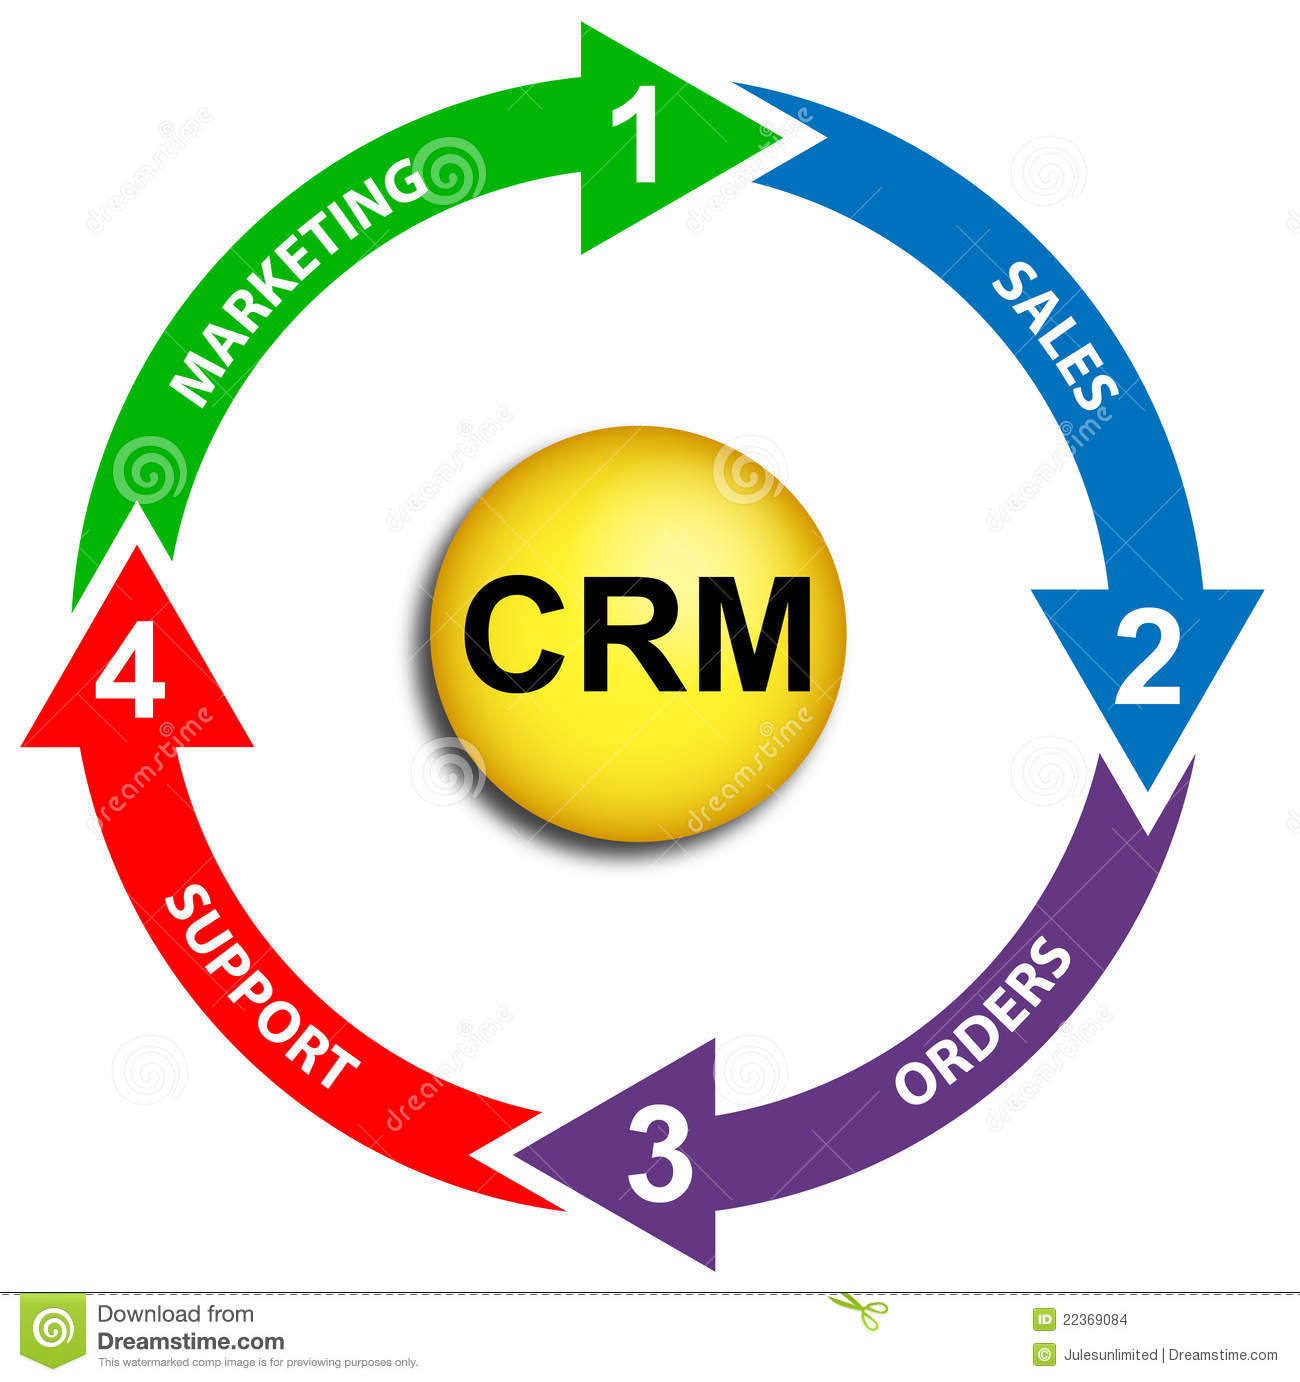 This image contains the key elements of customer relationship ...